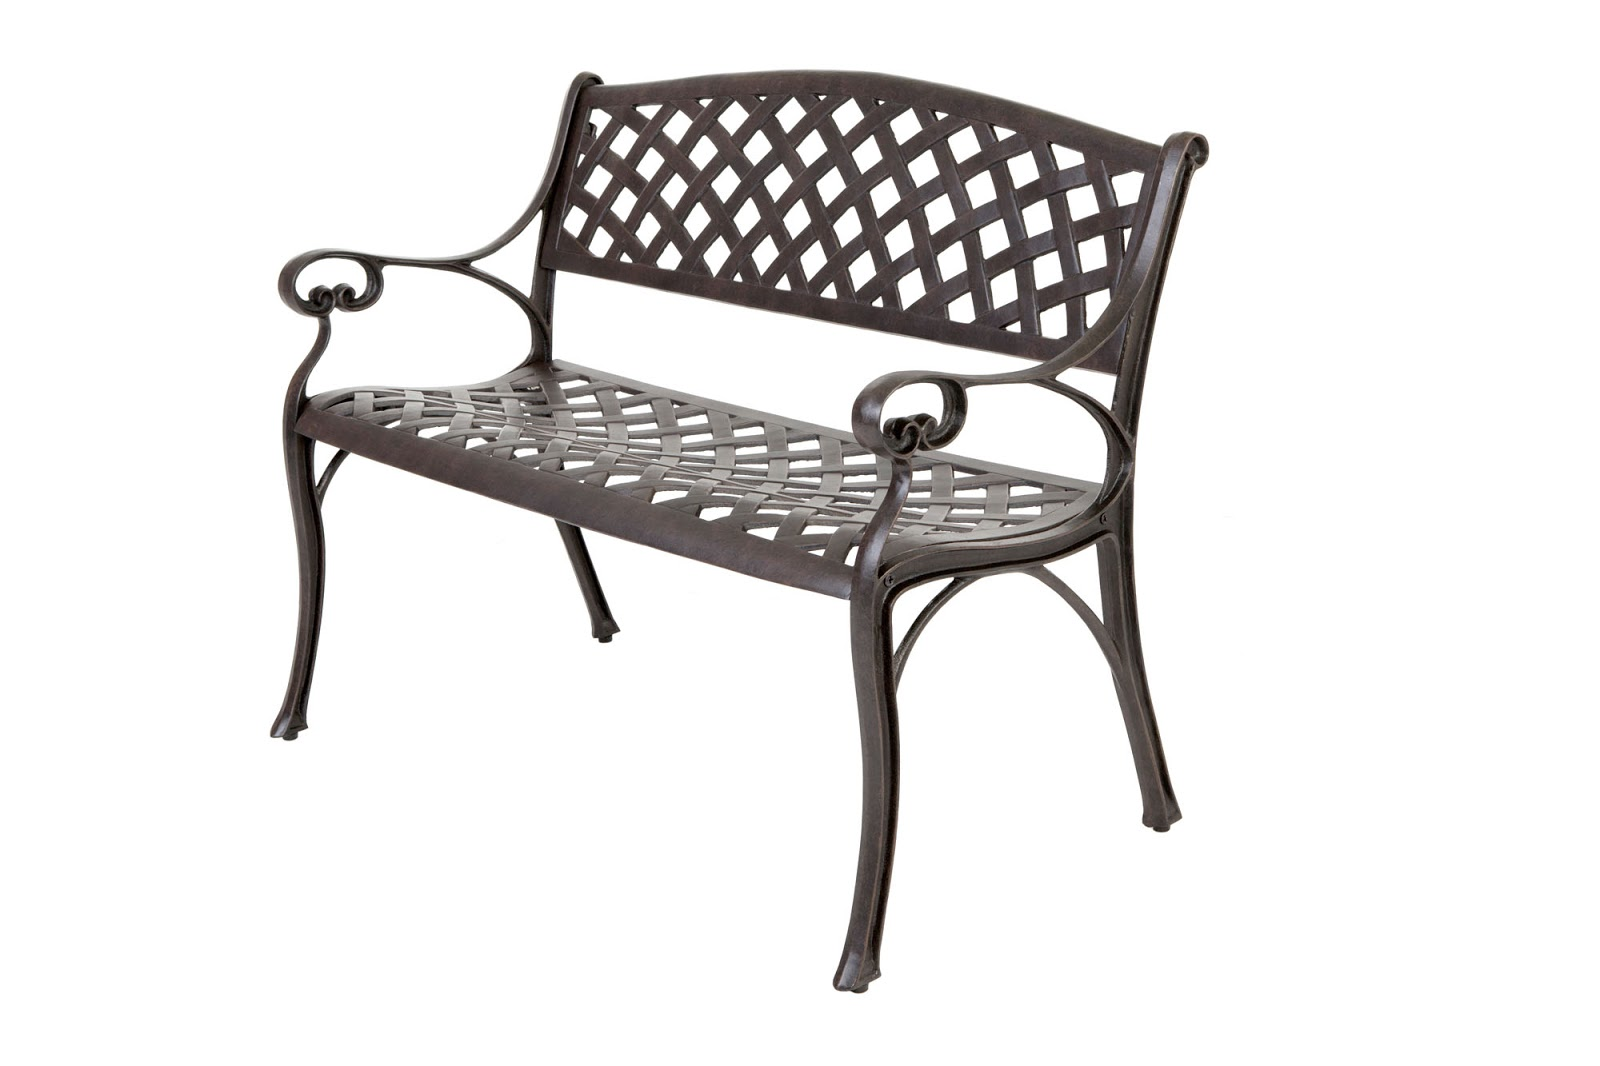 Outside Edge Garden Furniture Blog: Free Cast Aluminium ...